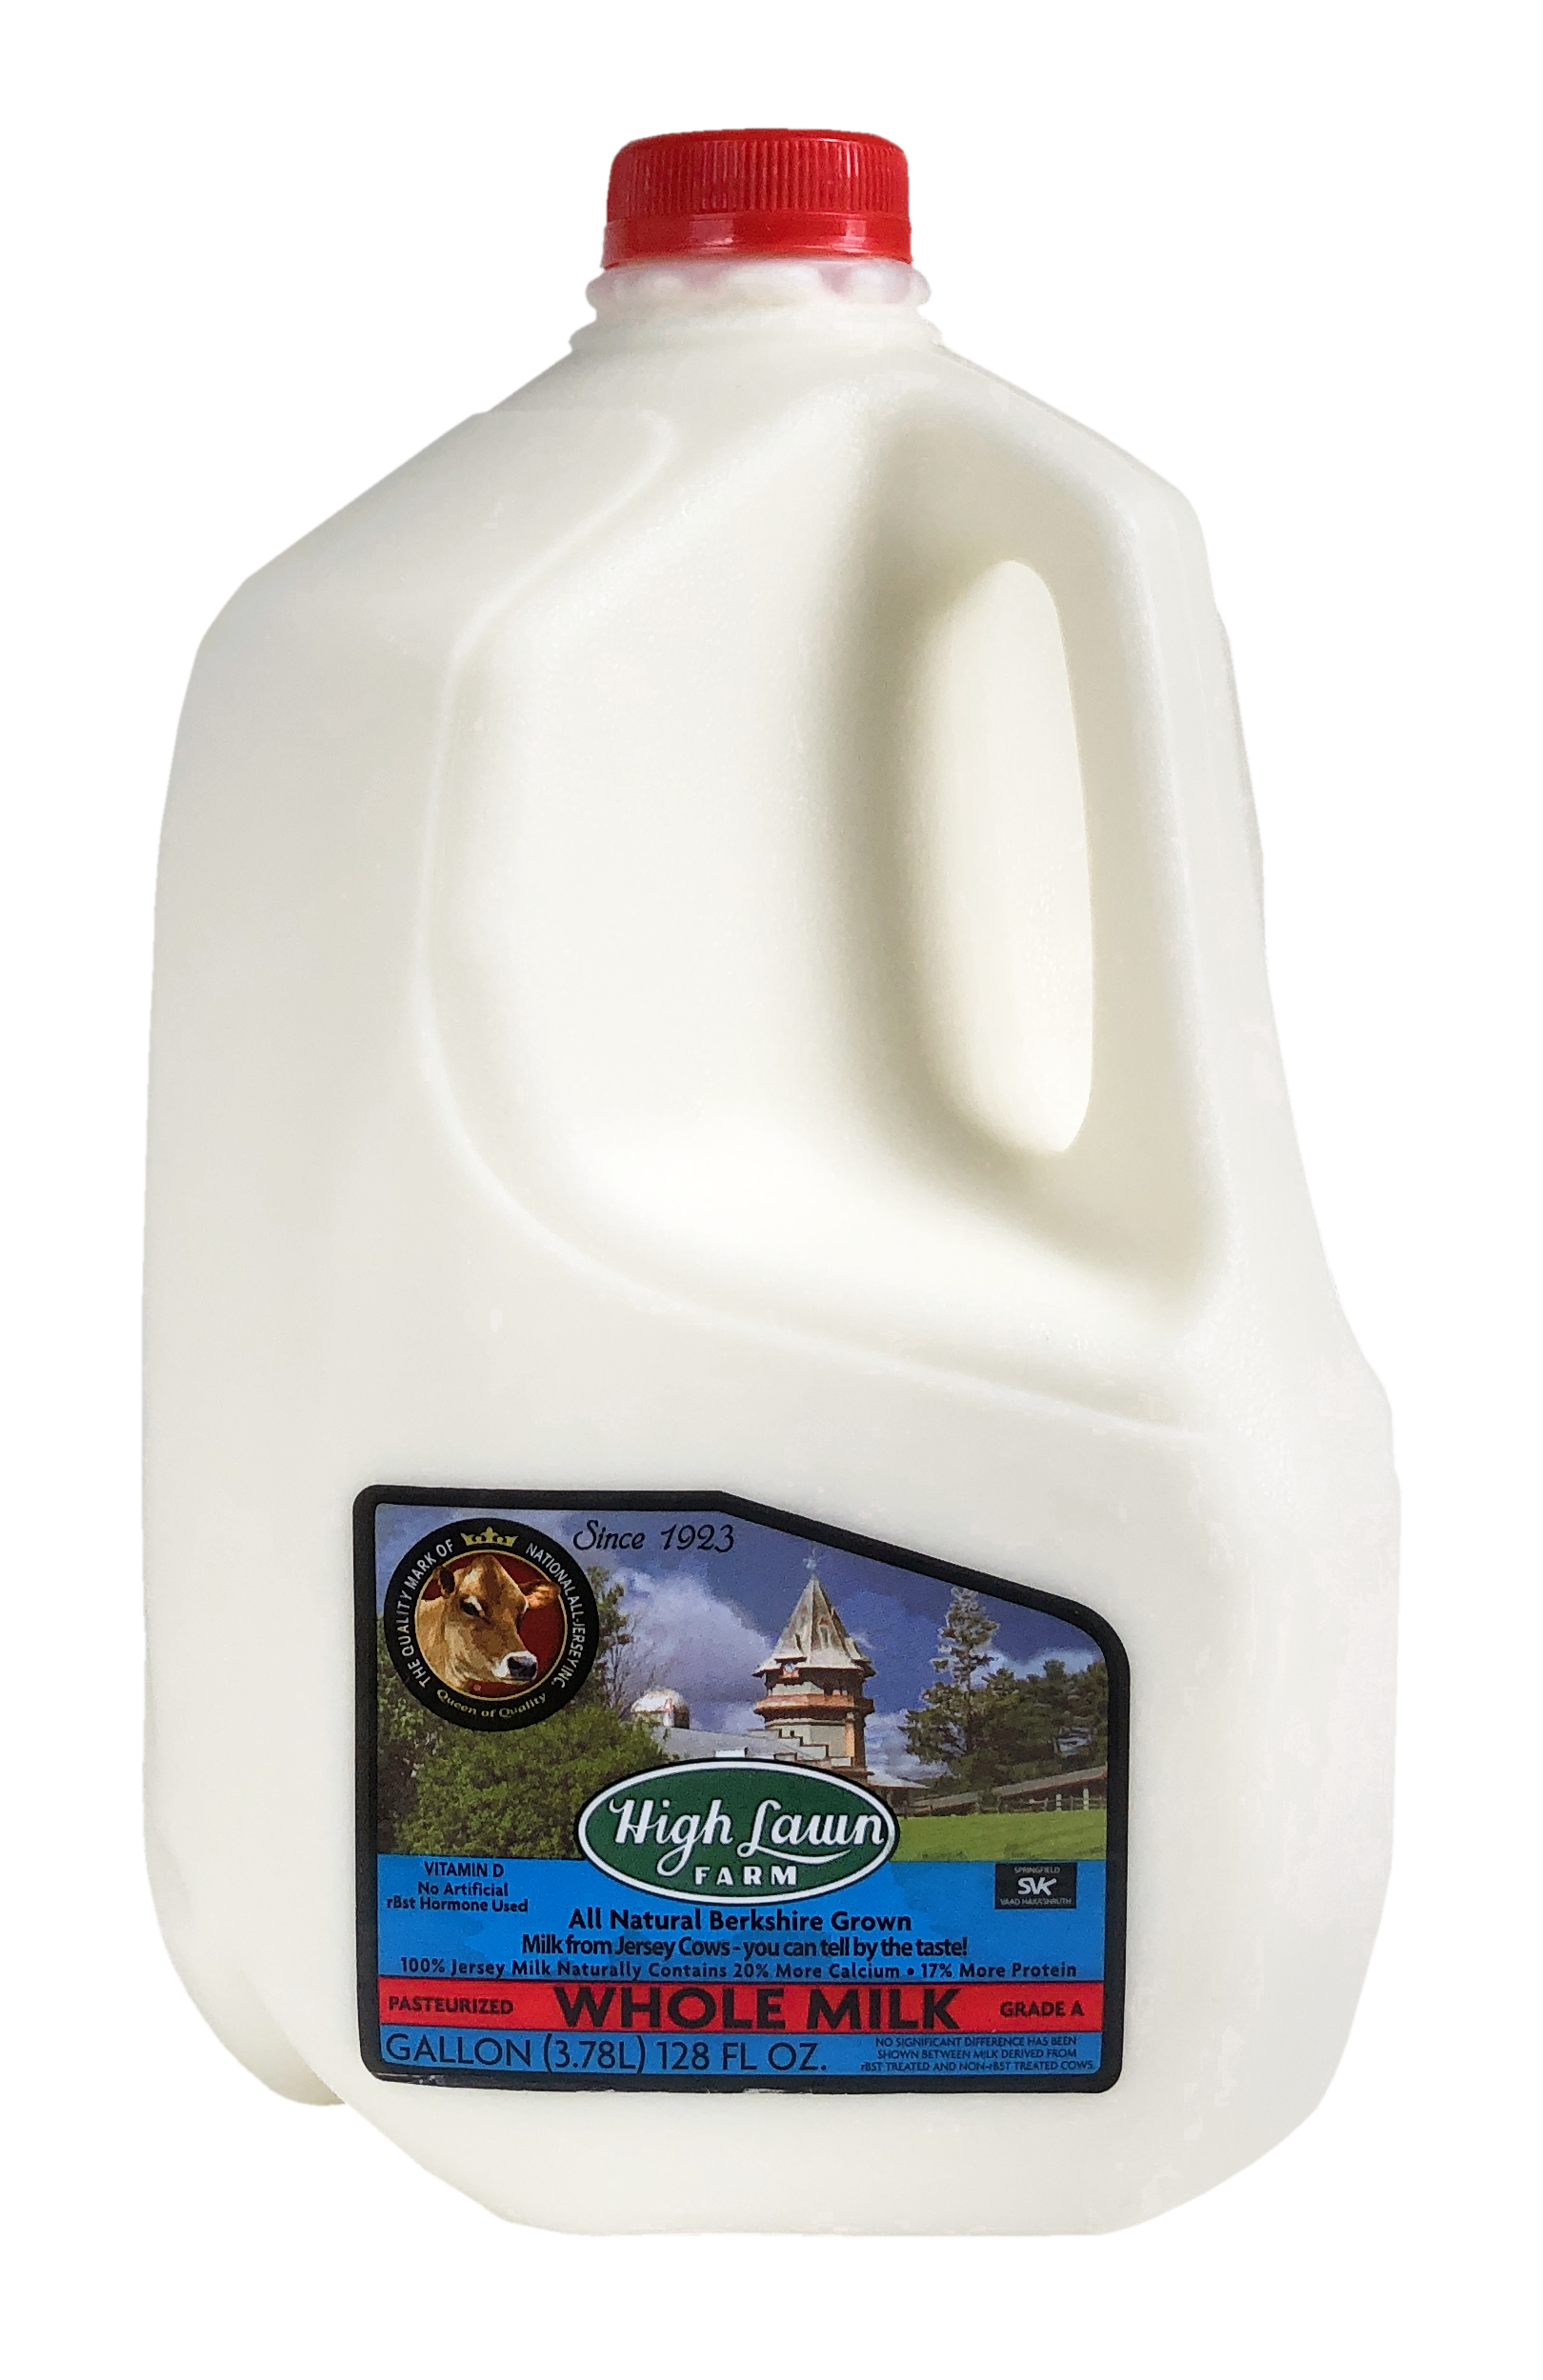 high_lawn_farm_whole_milk